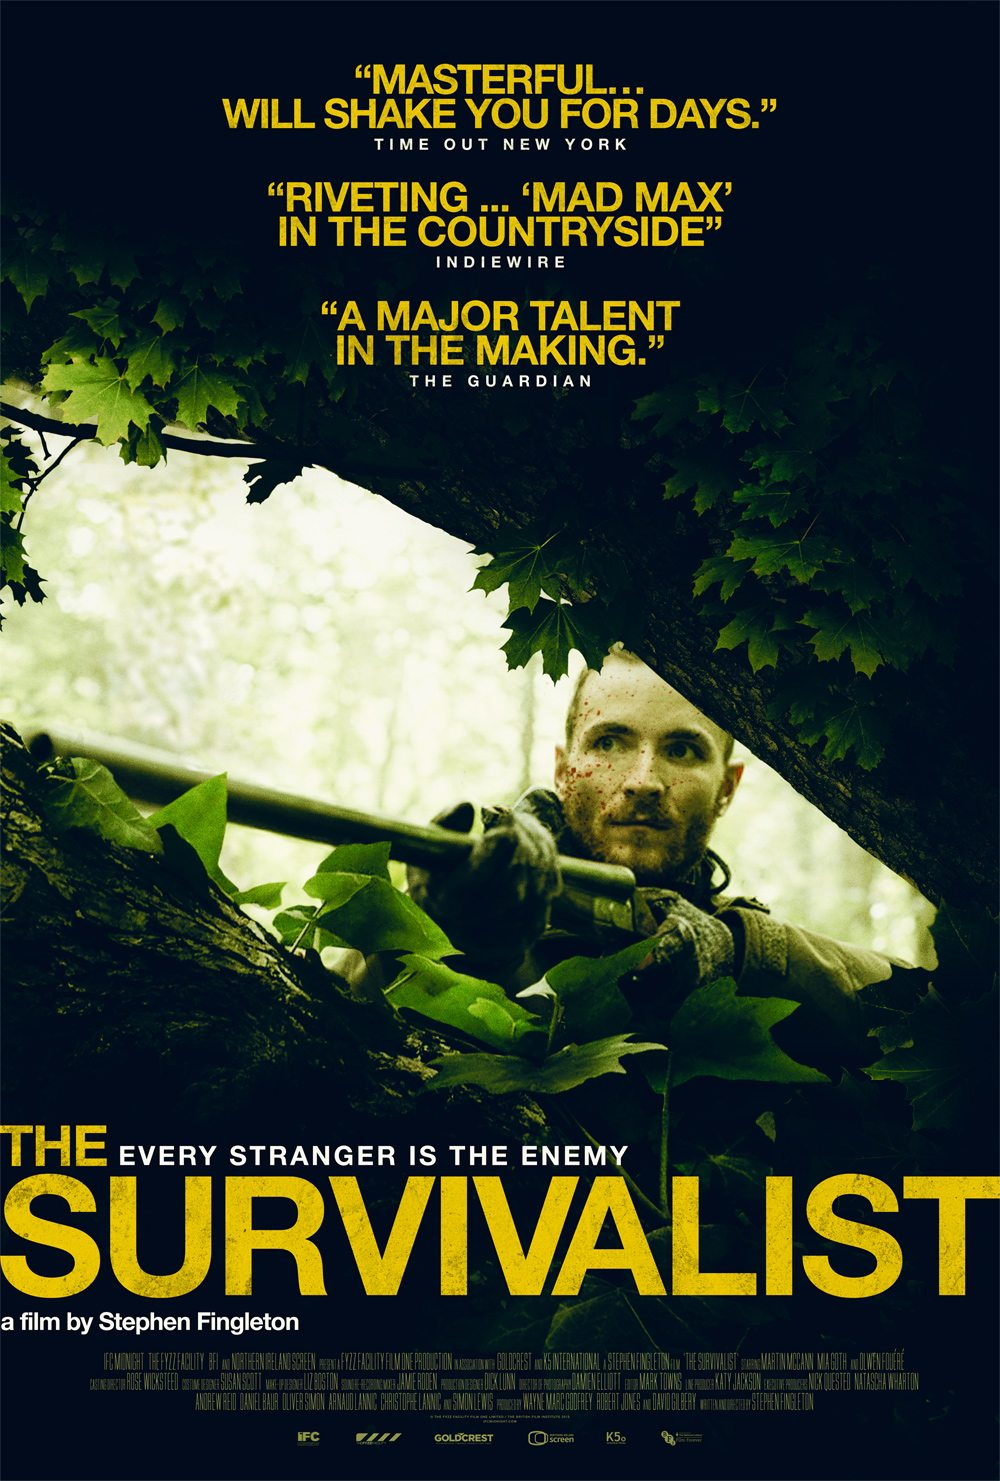 IFC Films' 'The Survivalist' Opens May 19th